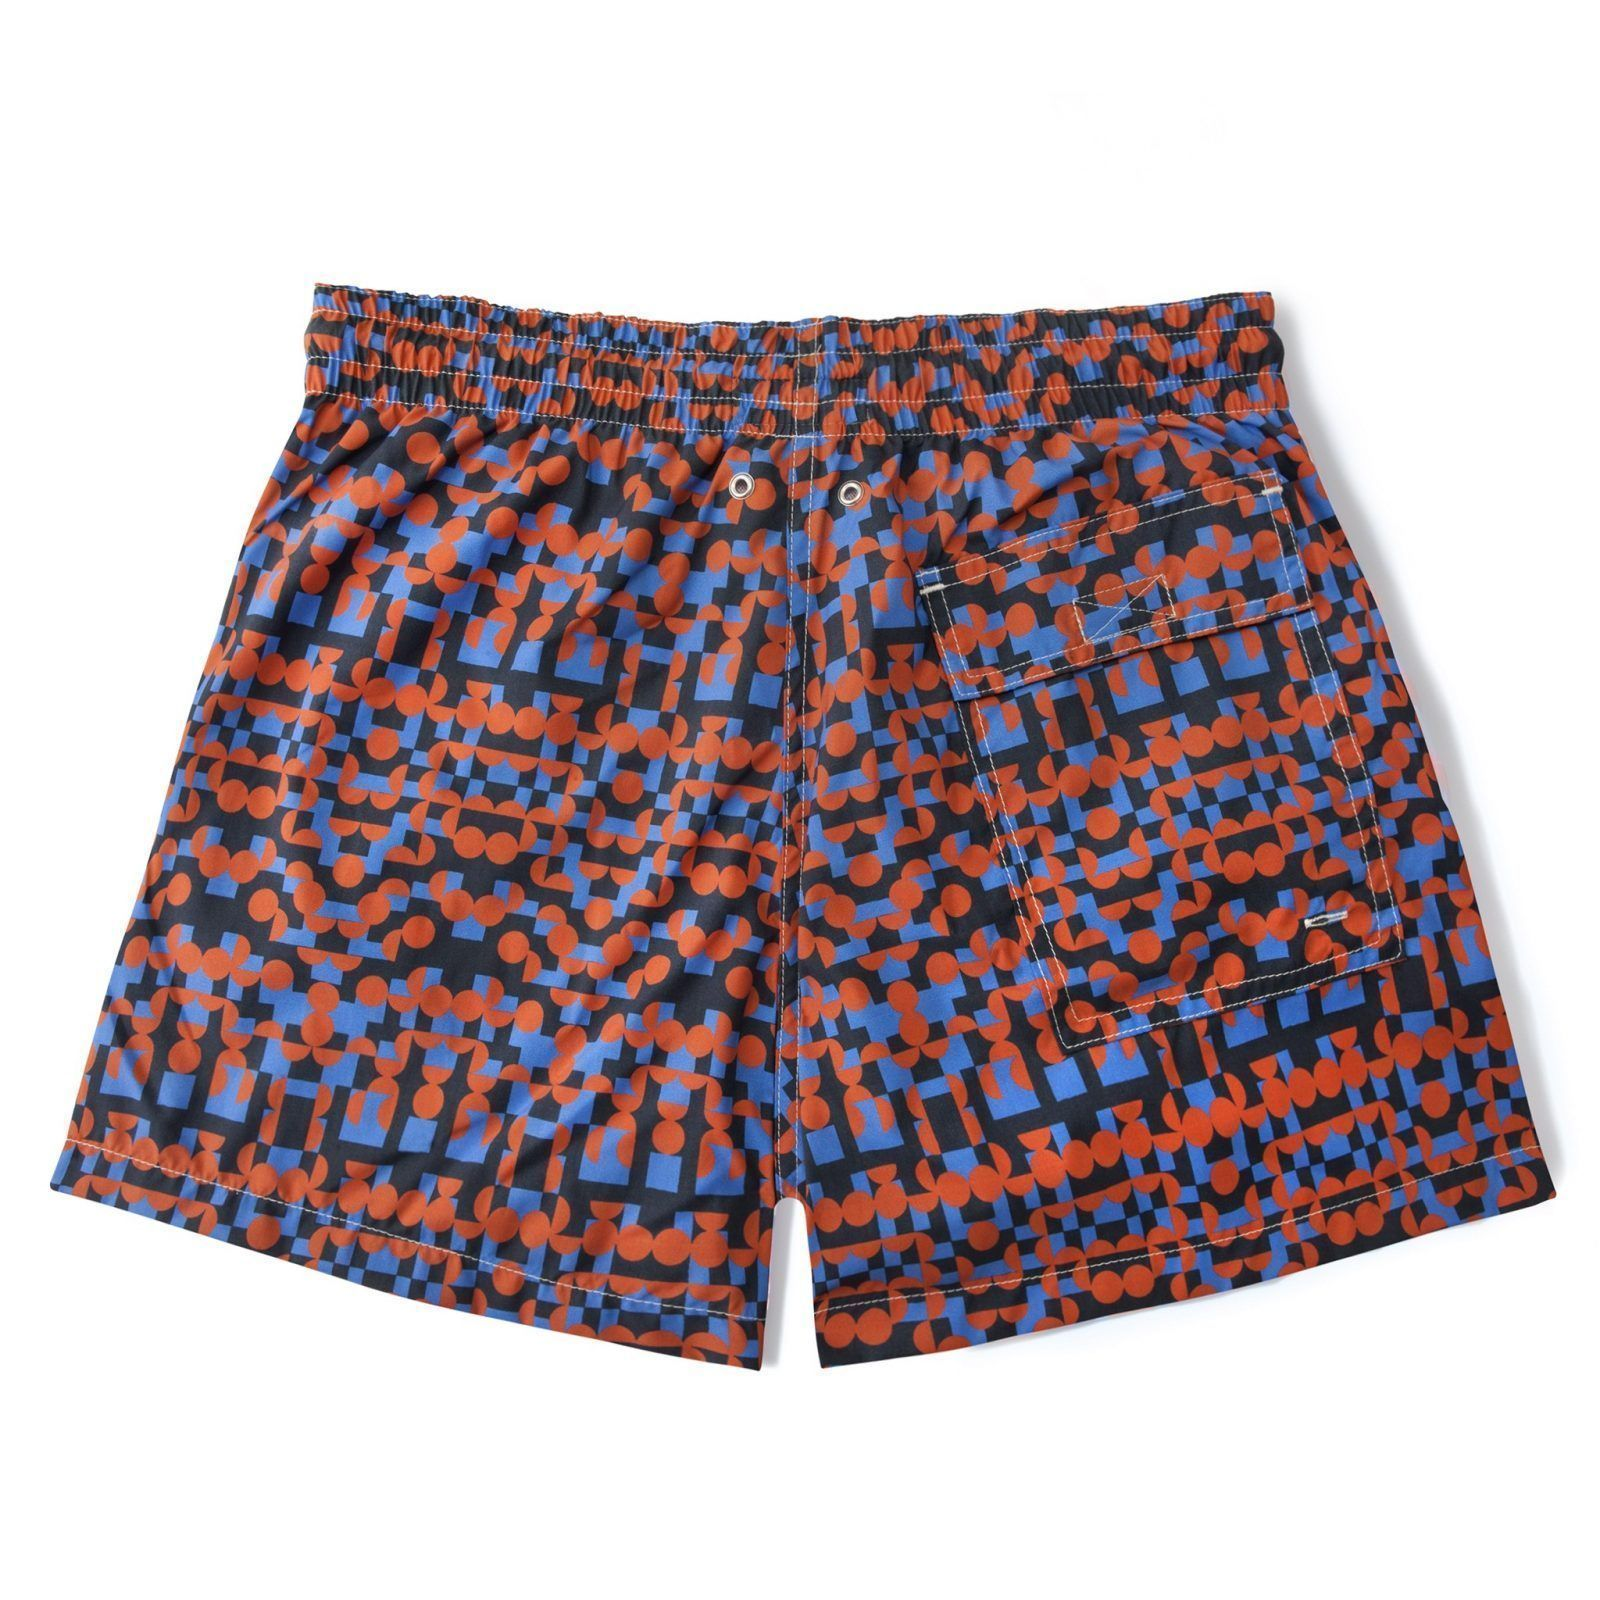 Short-Length Swim Shorts-495